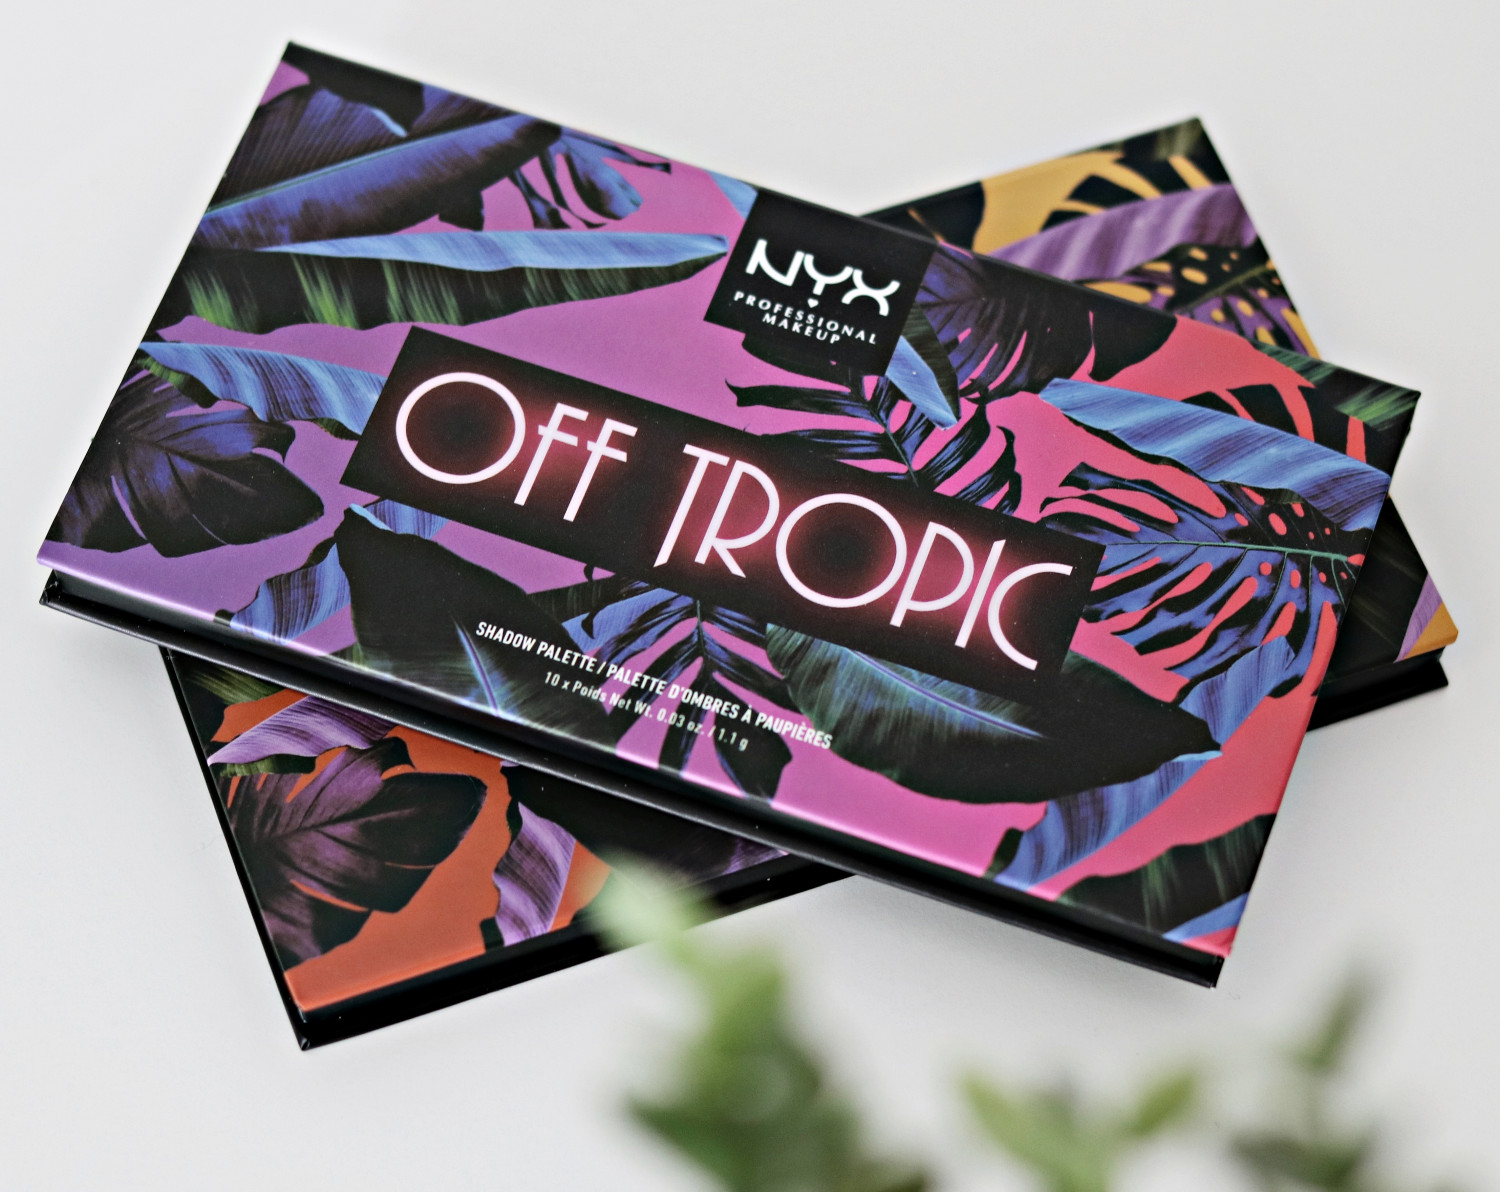 NYX Cosmetic Off Tropic